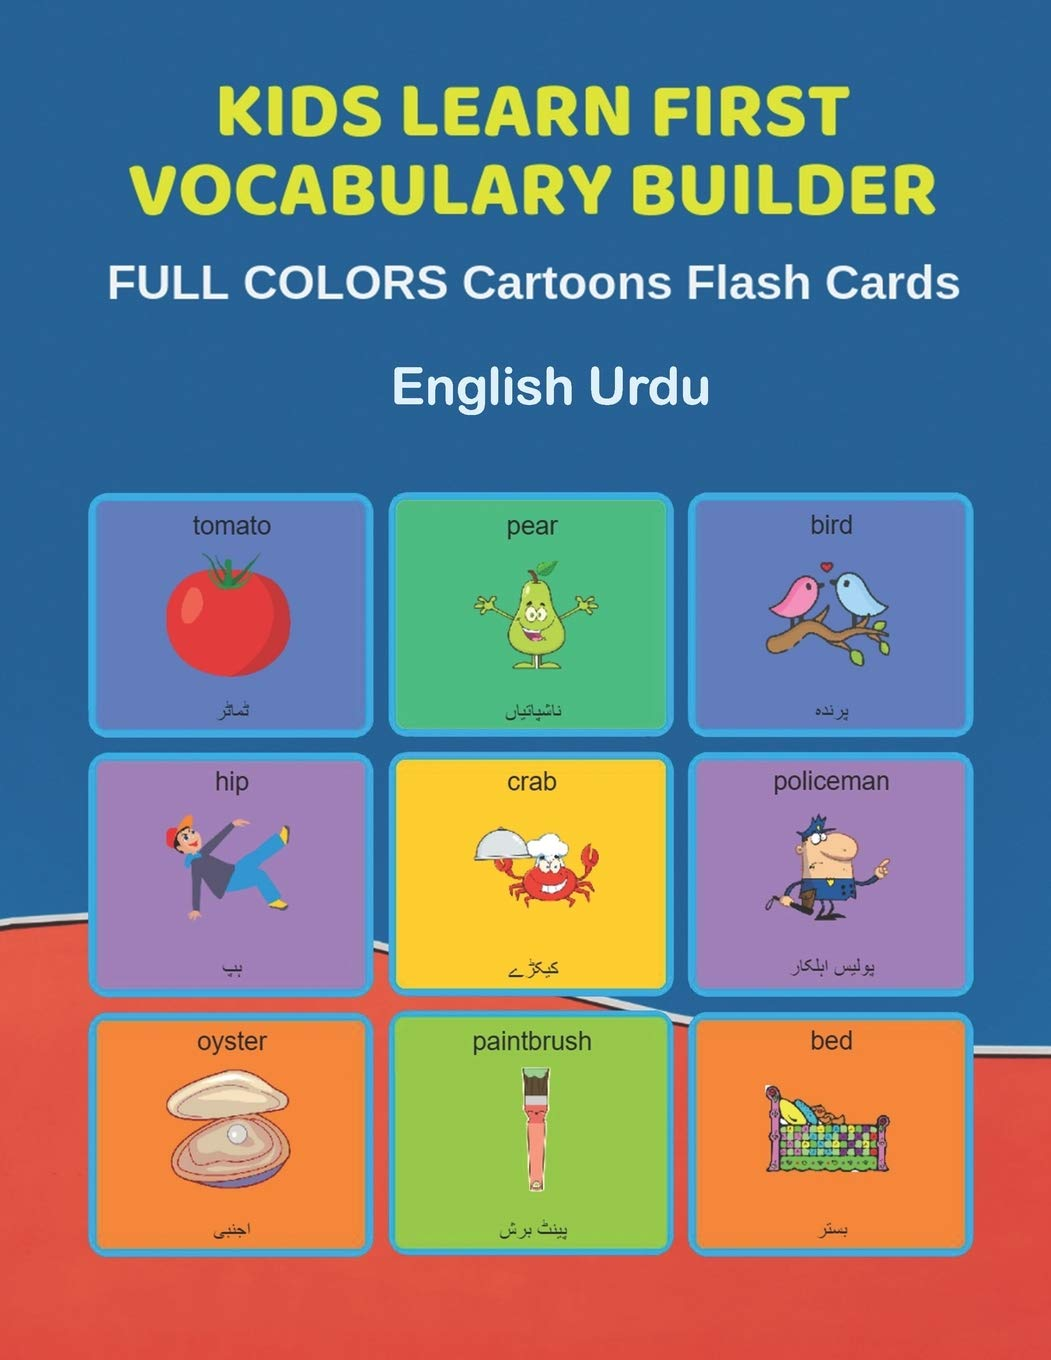 Amazon Com Kids Learn First Vocabulary Builder Full Colors Cartoons Flash Cards English Urdu Easy Babies Basic Frequency Sight Words Dictionary Colorful Picture Toddlers Pre K Preschool Kindergarten 9781089865926 Education Learn And Learn 4 good.com learning games for kids, learning activities for school, fun, interactive pc games for home. easy babies basic frequency sight words